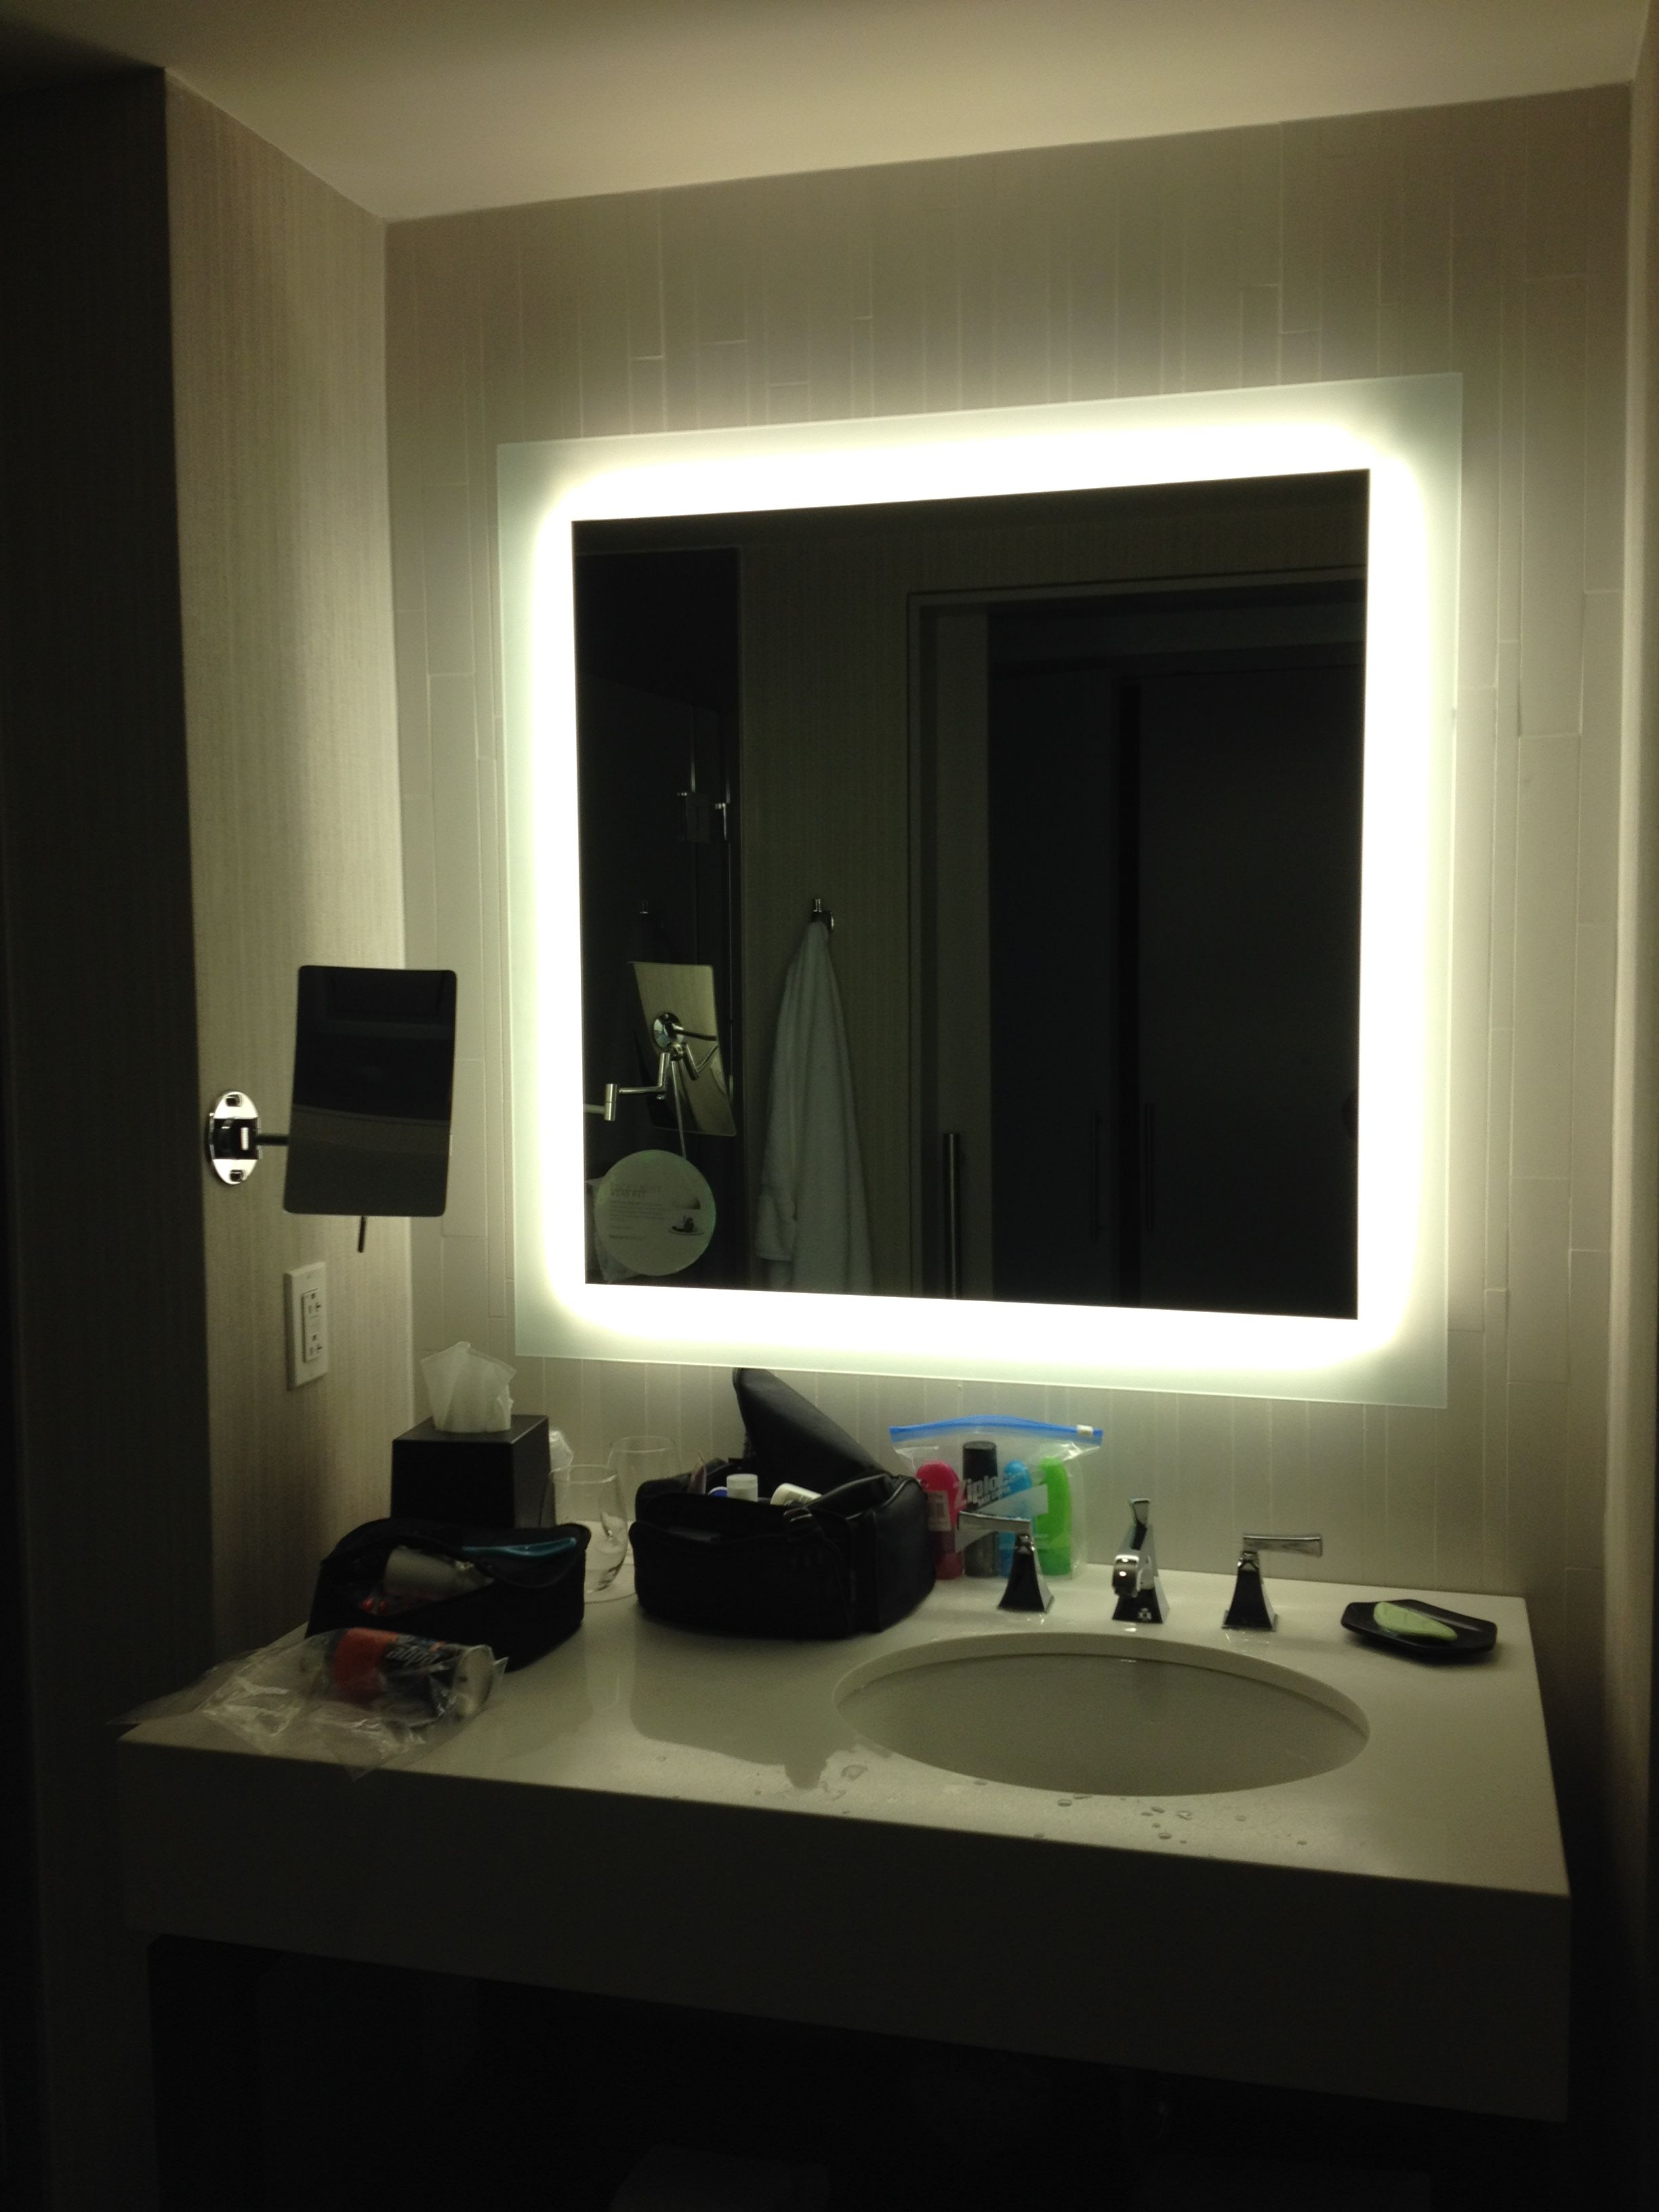 This Bathroom Mirror Light Was Like Doing Makeup With A Ring Light I Loved The Magnetizing Mirror Bathroom Mirror Bathroom Mirror Lights Hotel Bathroom Mirror